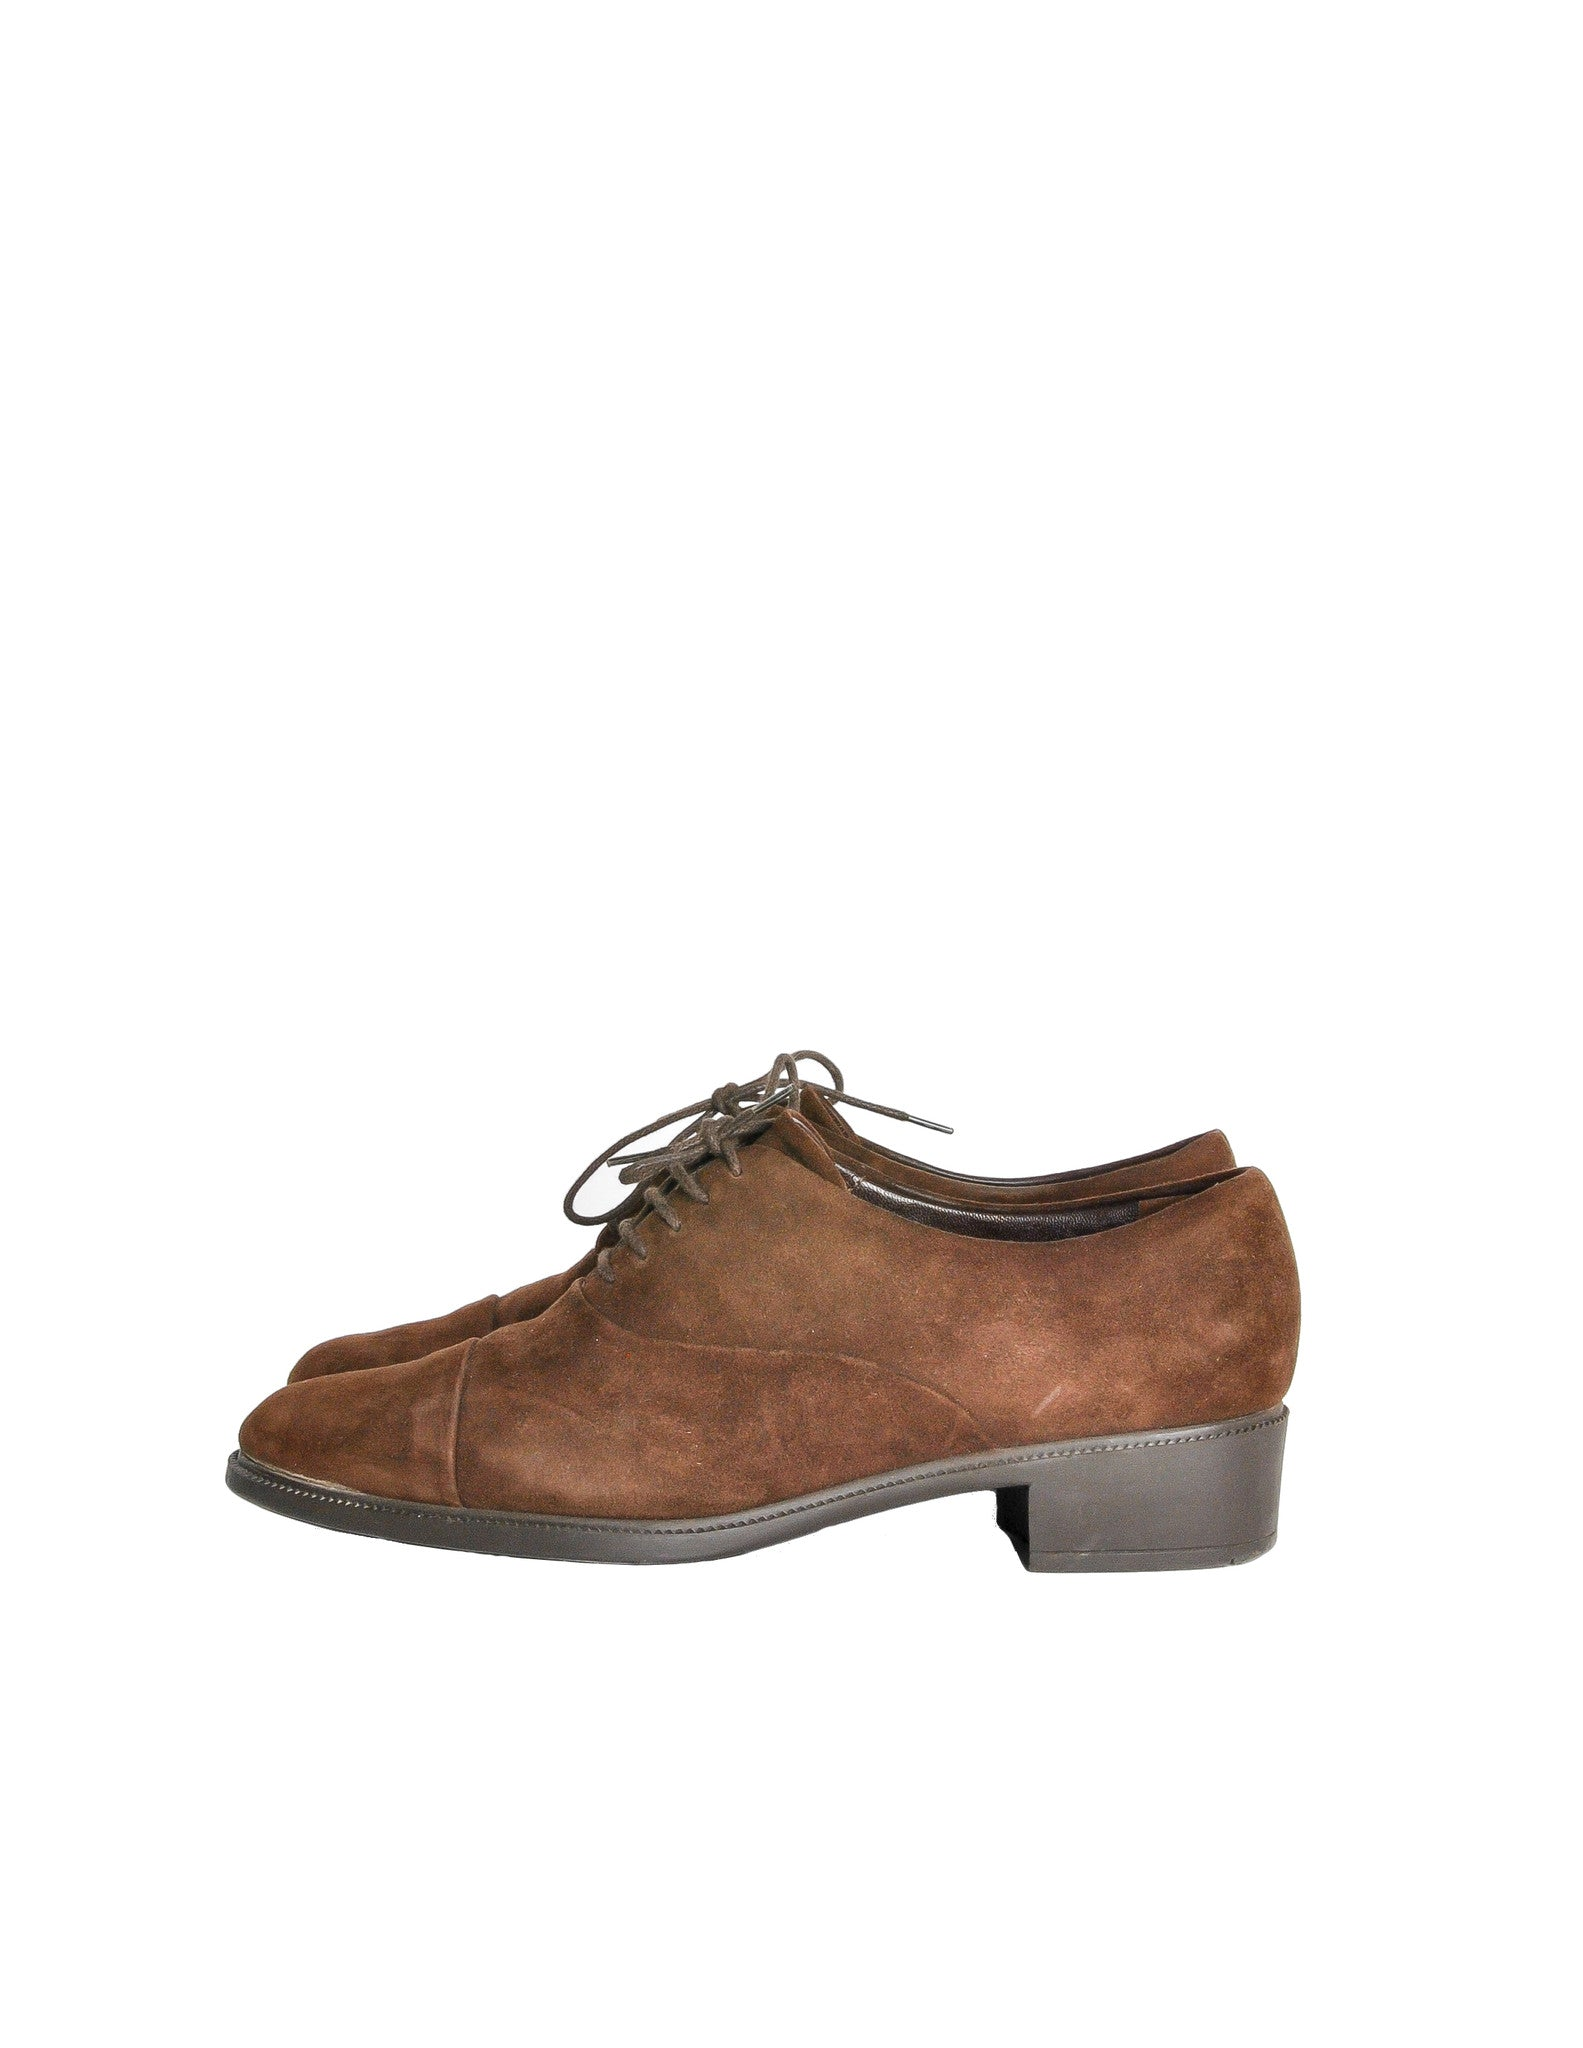 Ferragamo Vintage Brown Suede Heeled Oxford Shoes - Amarcord Vintage Fashion  - 1